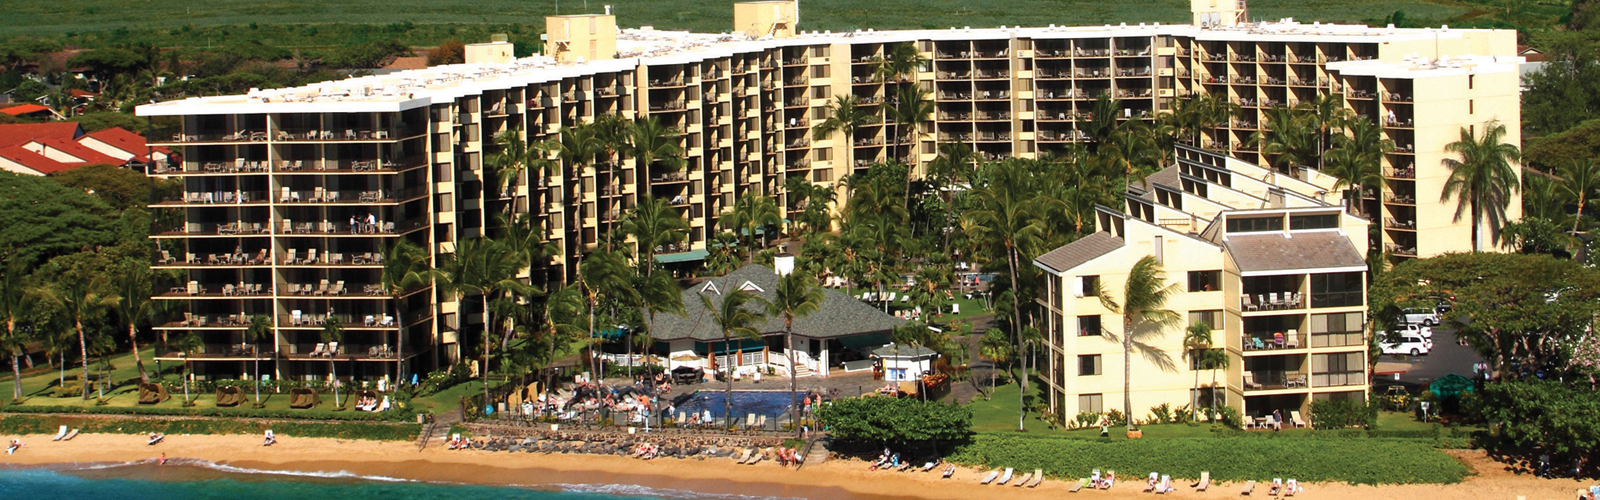 Aerial view of Aston Kaanapali Shores condo